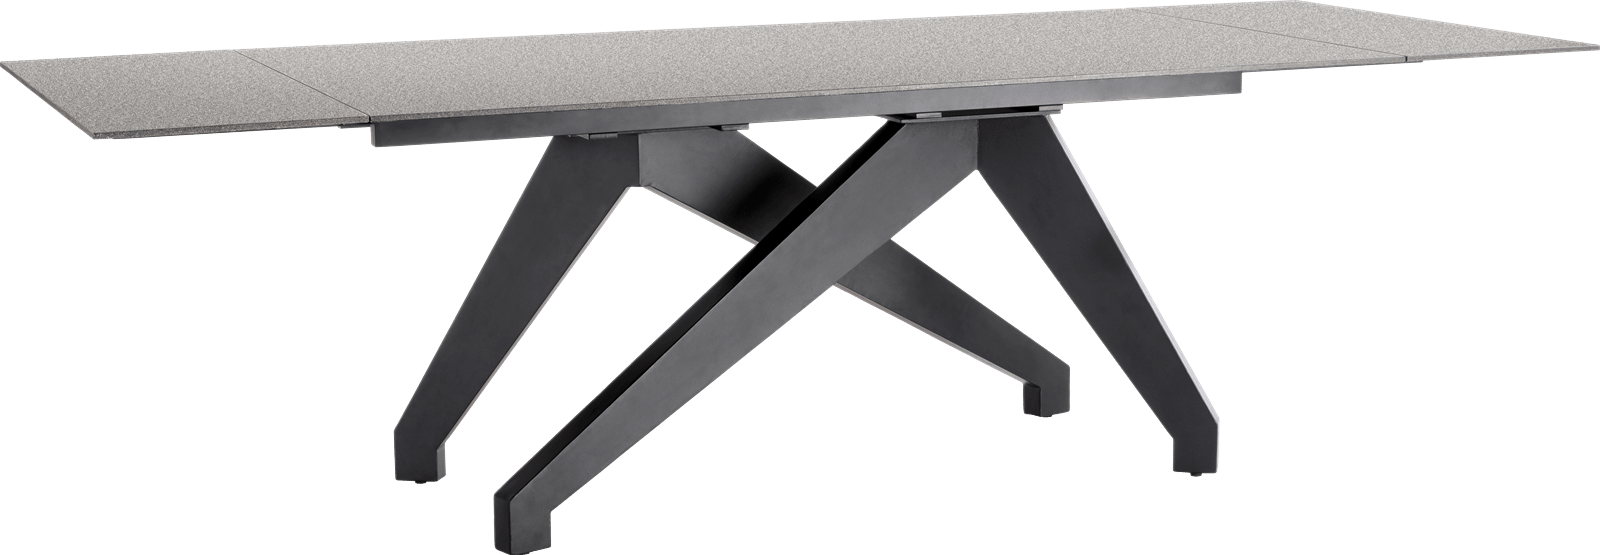 Enzo - table a rallonge (+ 2 x 40) x 100 cm - lava anthracite